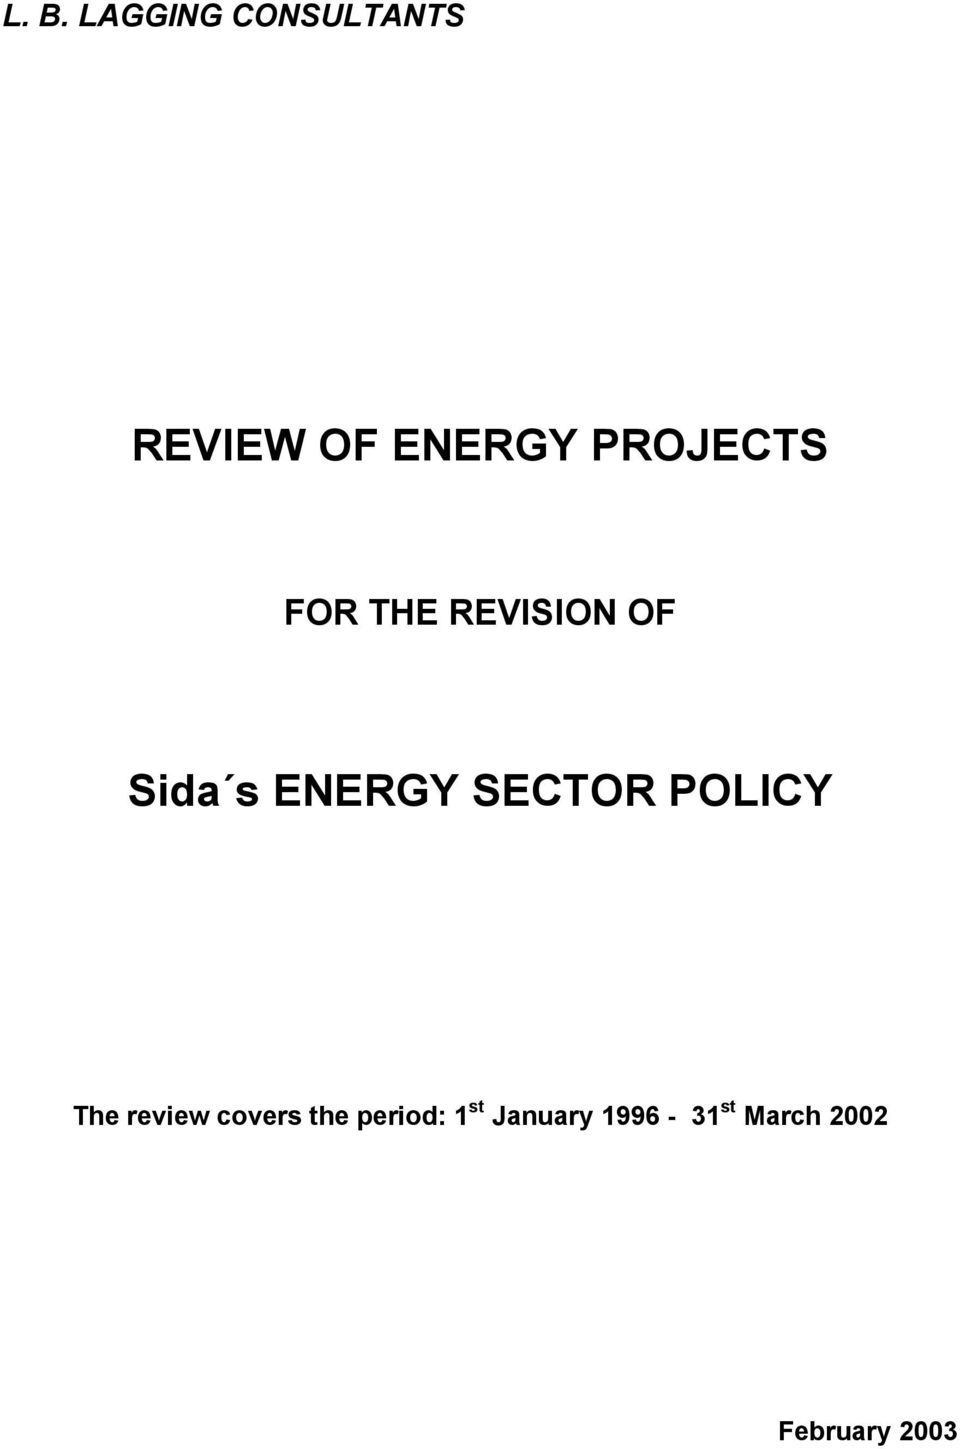 SECTOR POLICY The review covers the period: